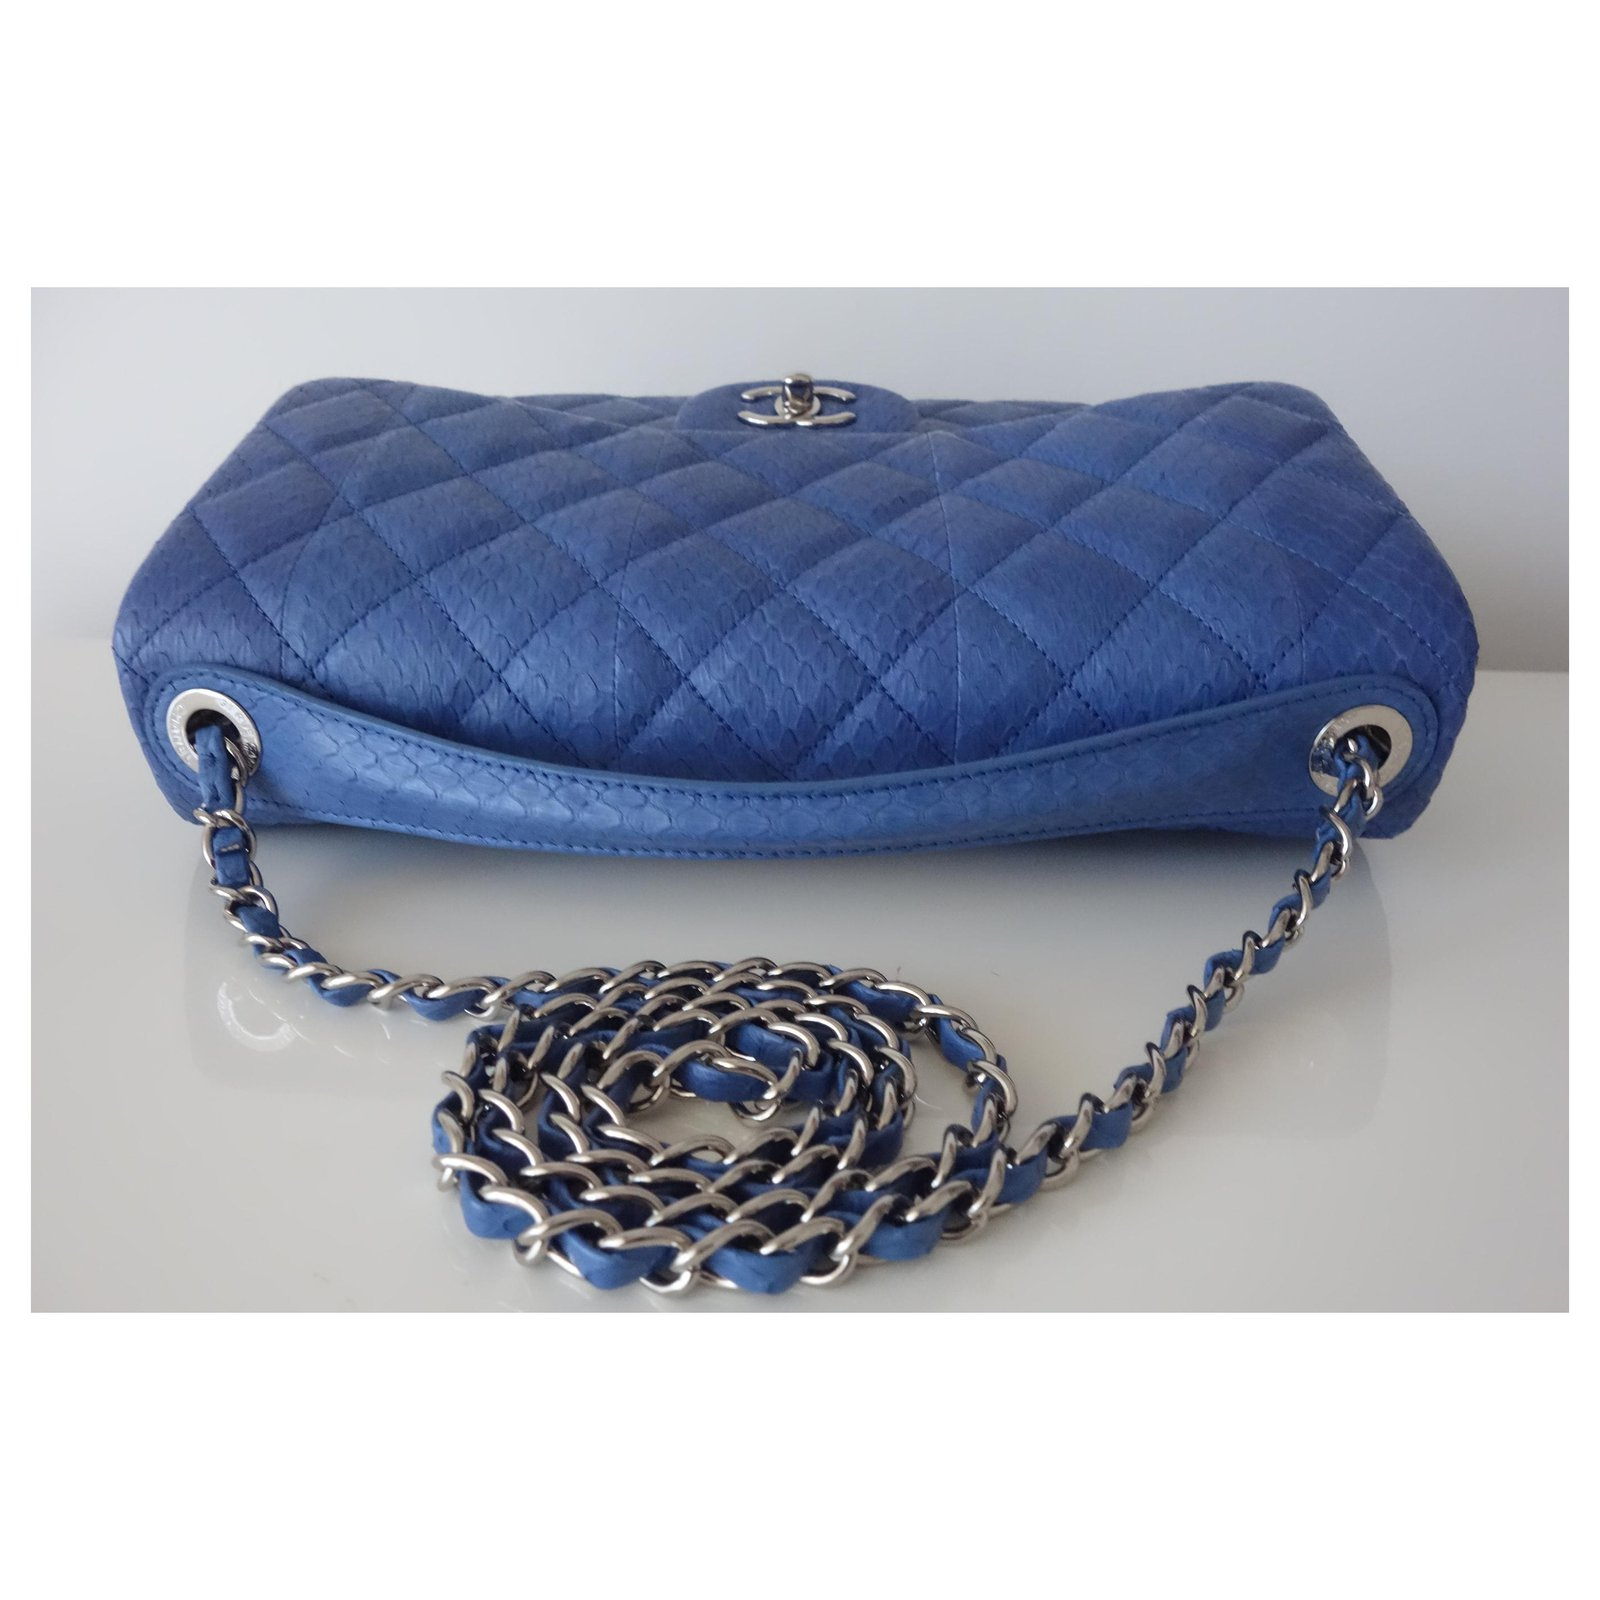 8218ad8de1a96b Chanel BAG CHANEL LEATHER EXOTIC GM Handbags Exotic leather Blue ref.114897  - Joli Closet